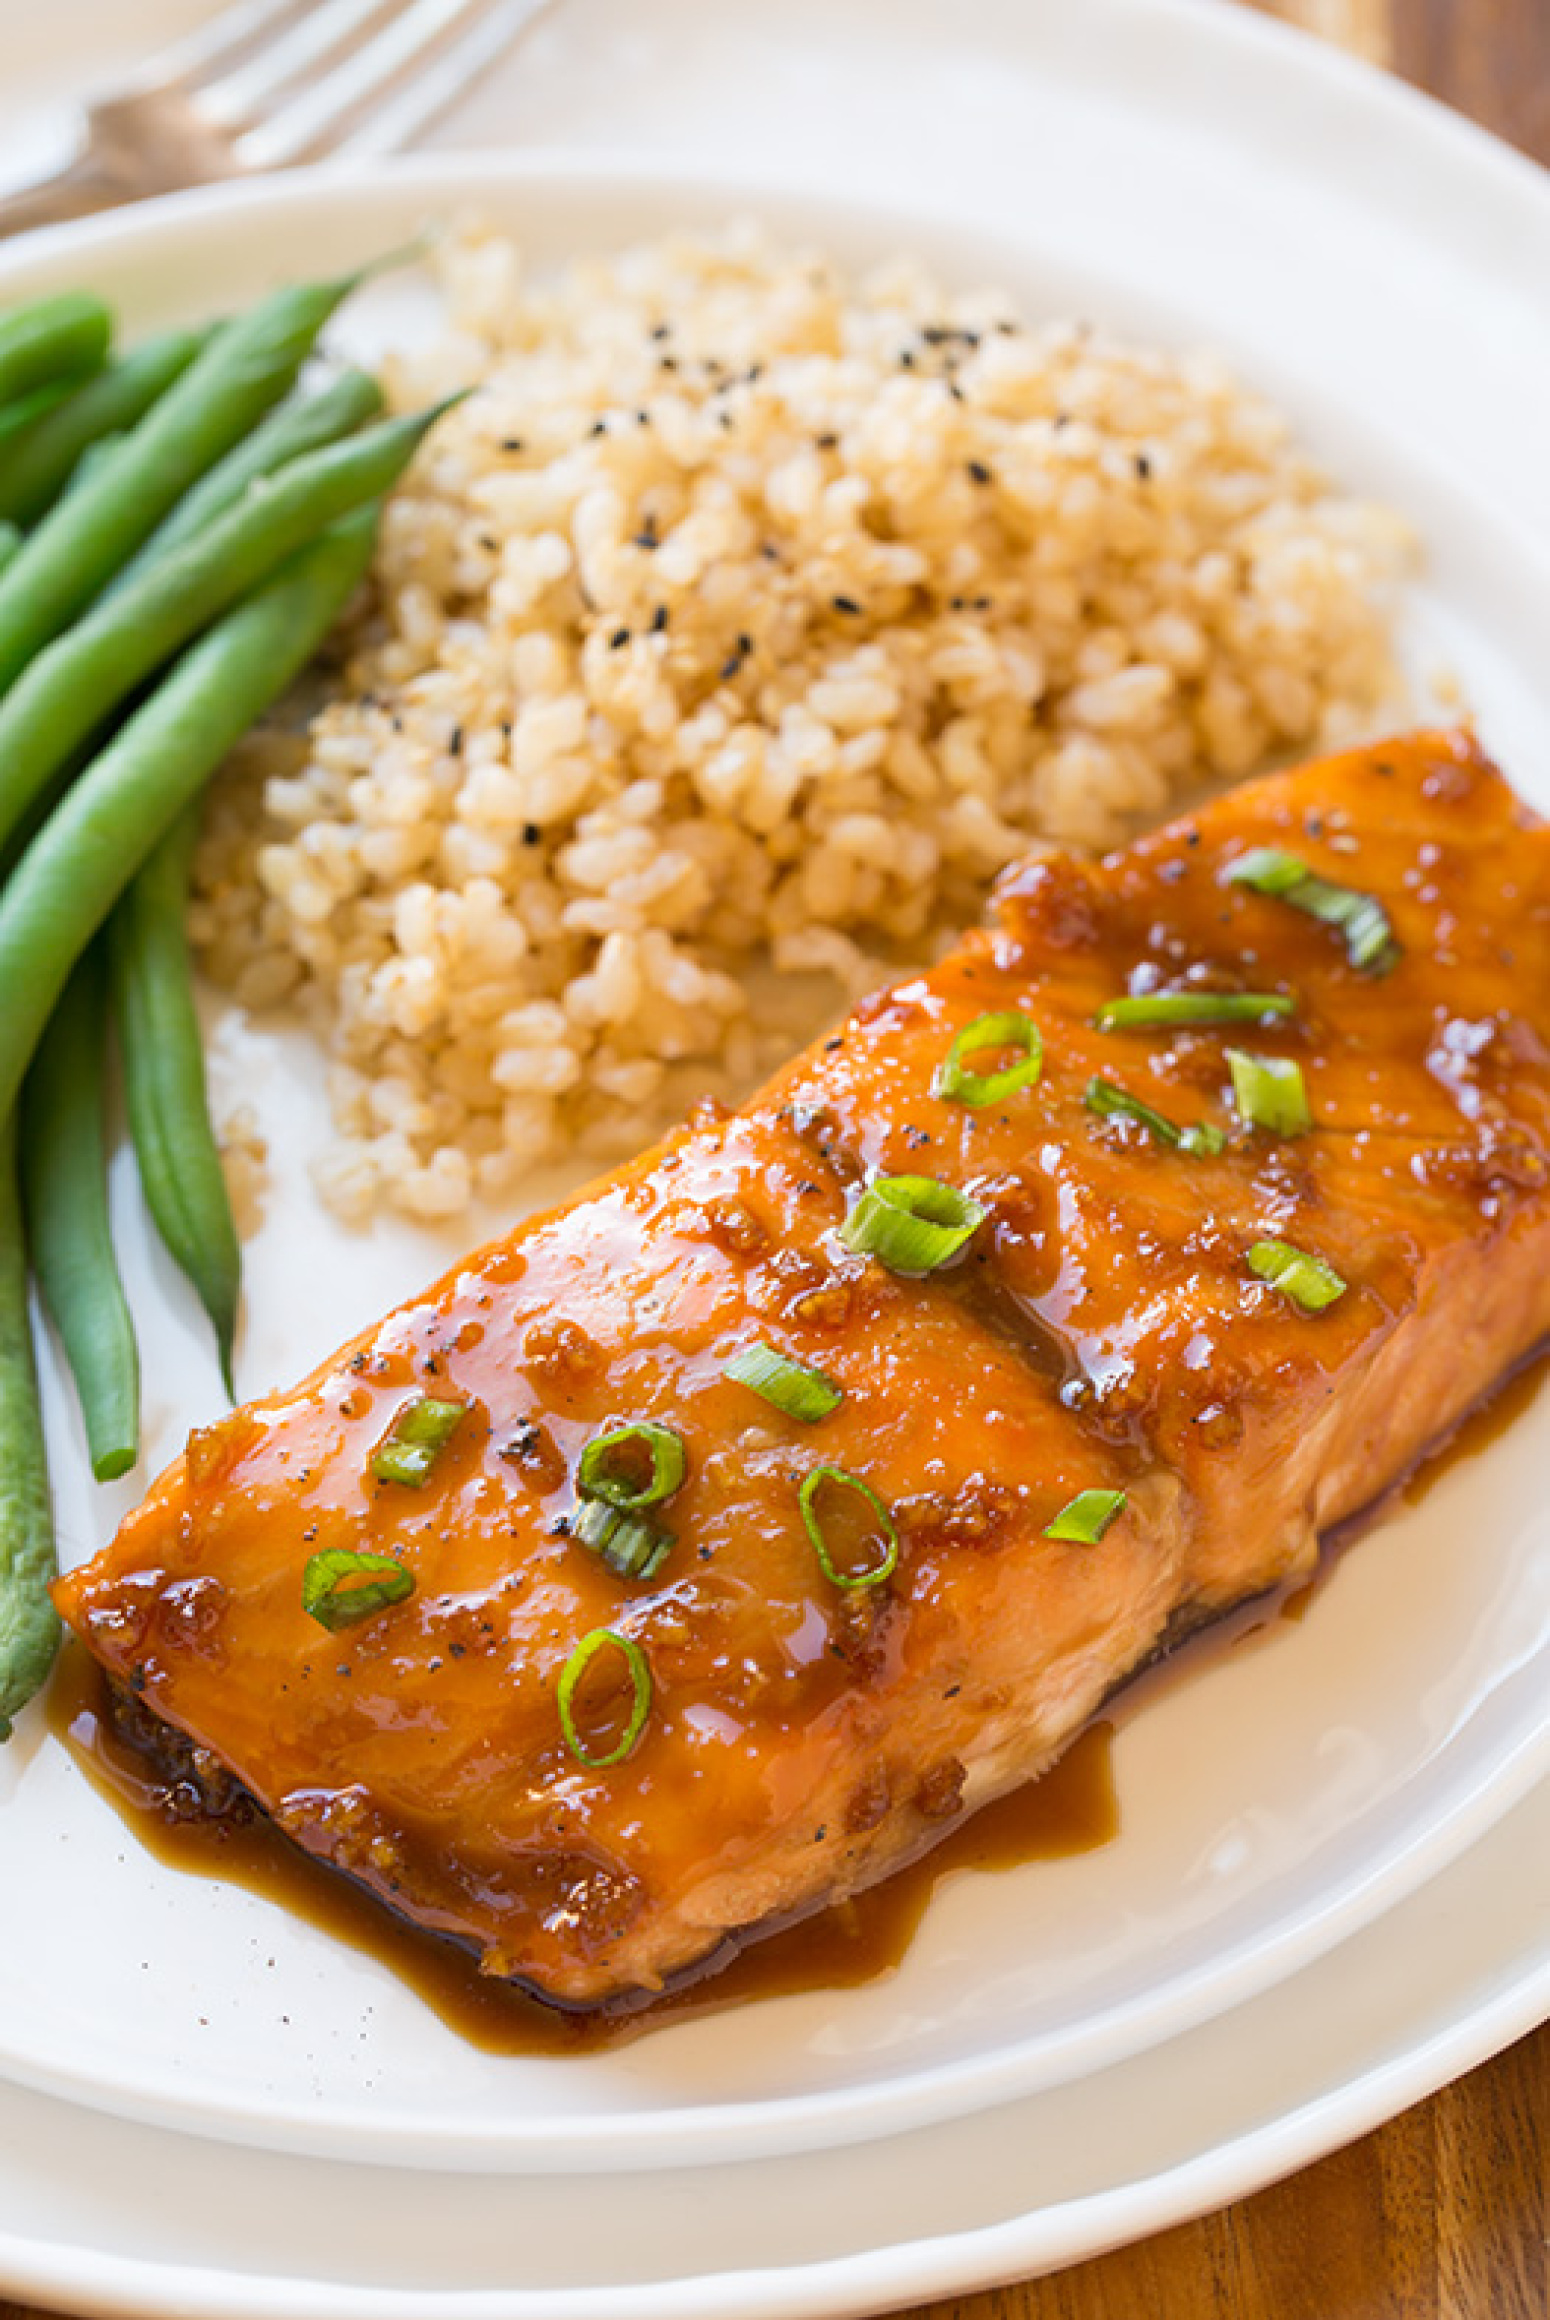 Maple-Soy Glazed Salmon Recipe | Just A Pinch Recipes